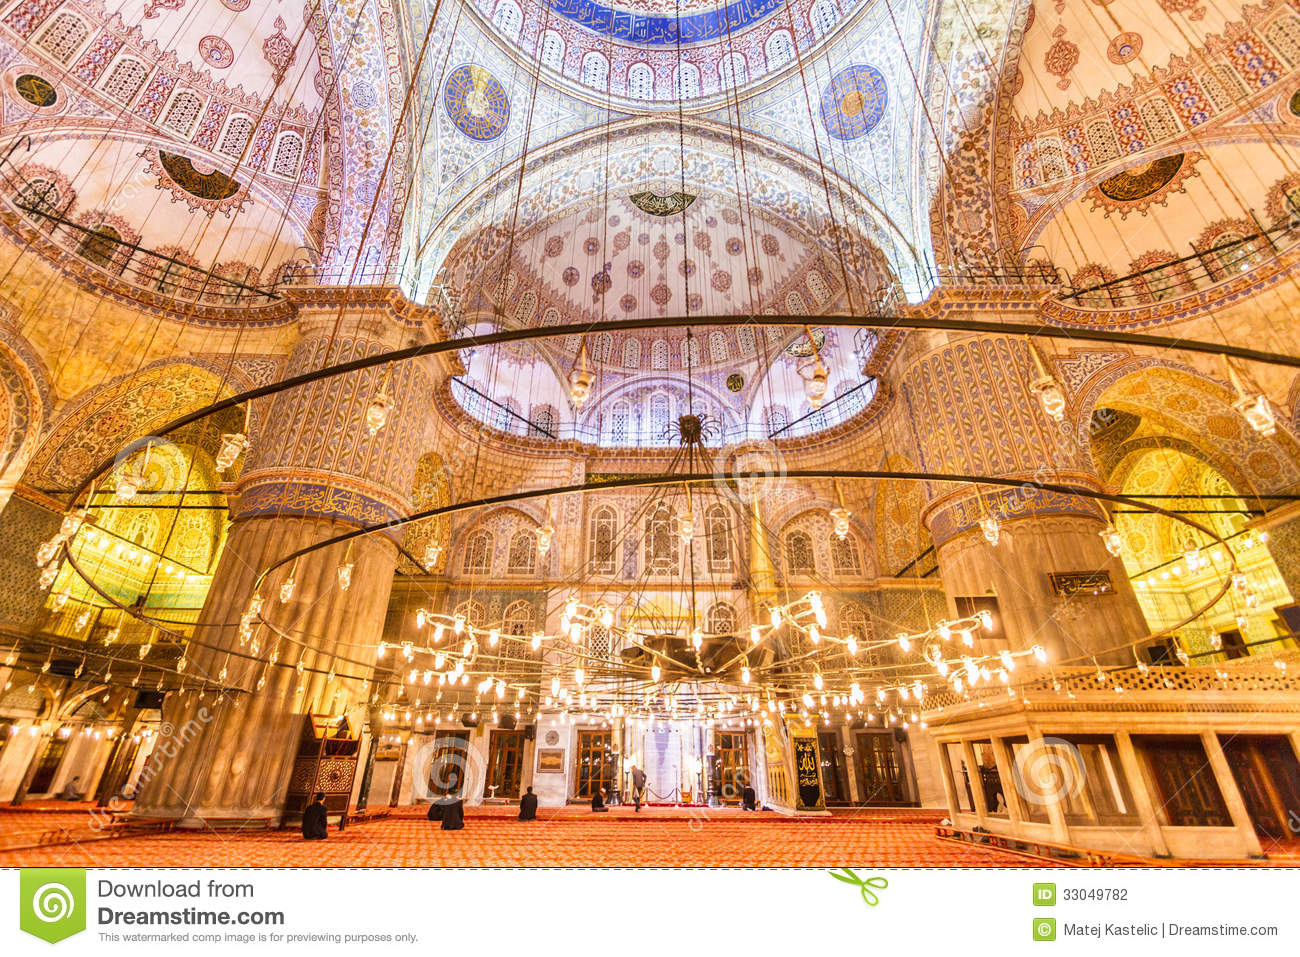 Download Sultanahmet Mosque (Blue Mosque) In Istanbul, Turkey Stock Photo - Image of mosque, ancient: 33049782